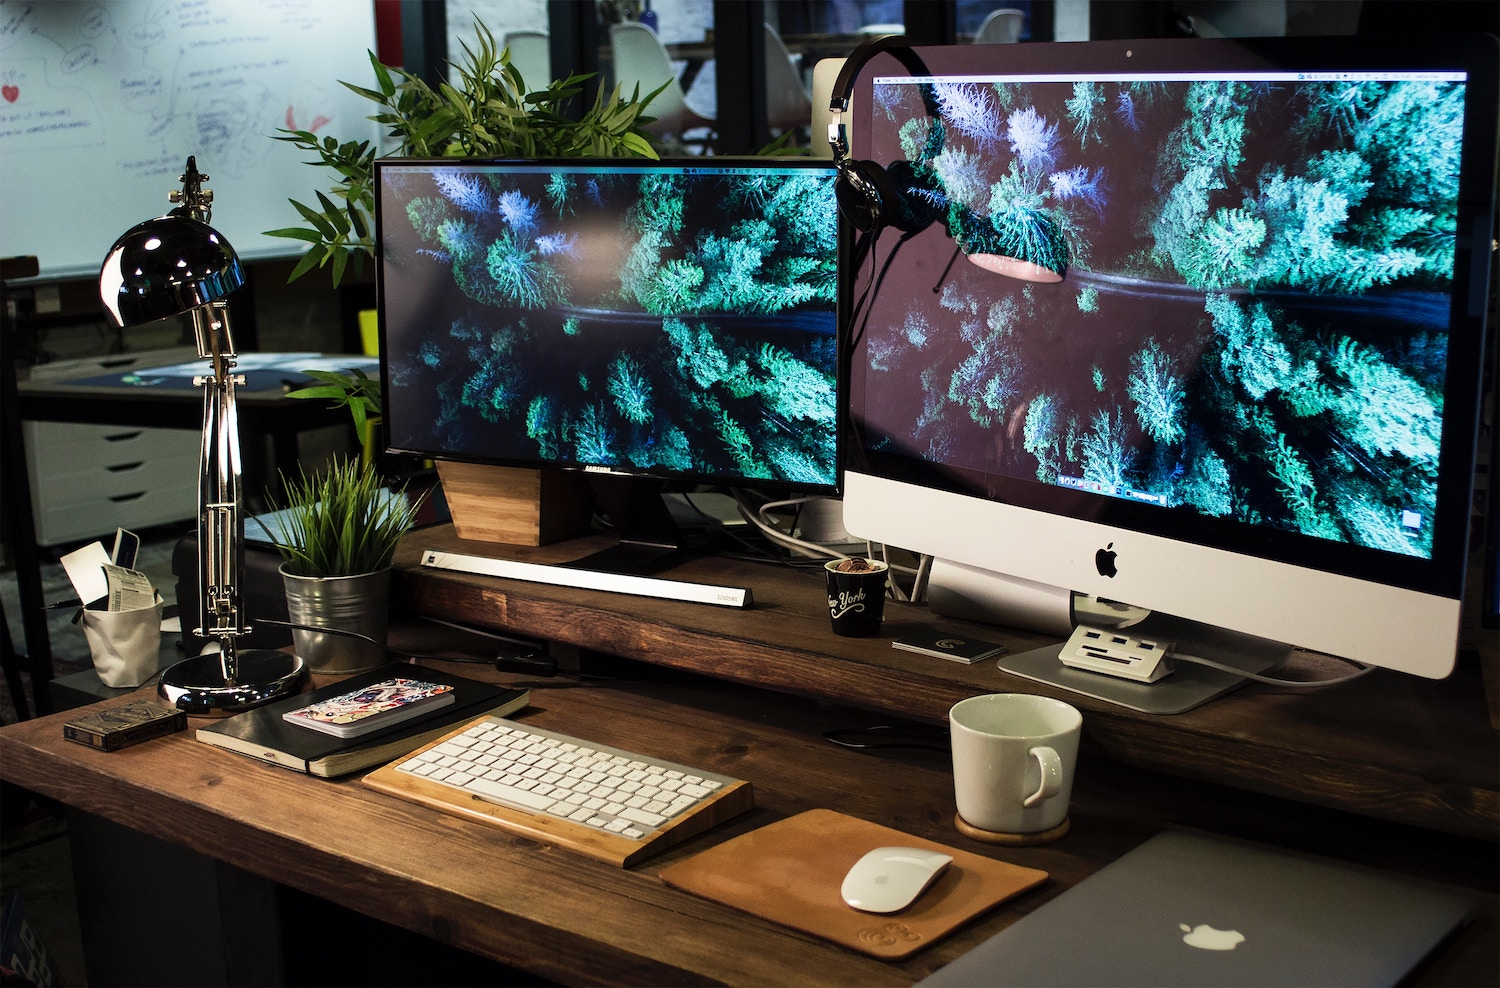 Two computer screens on a wooden desk with a mug